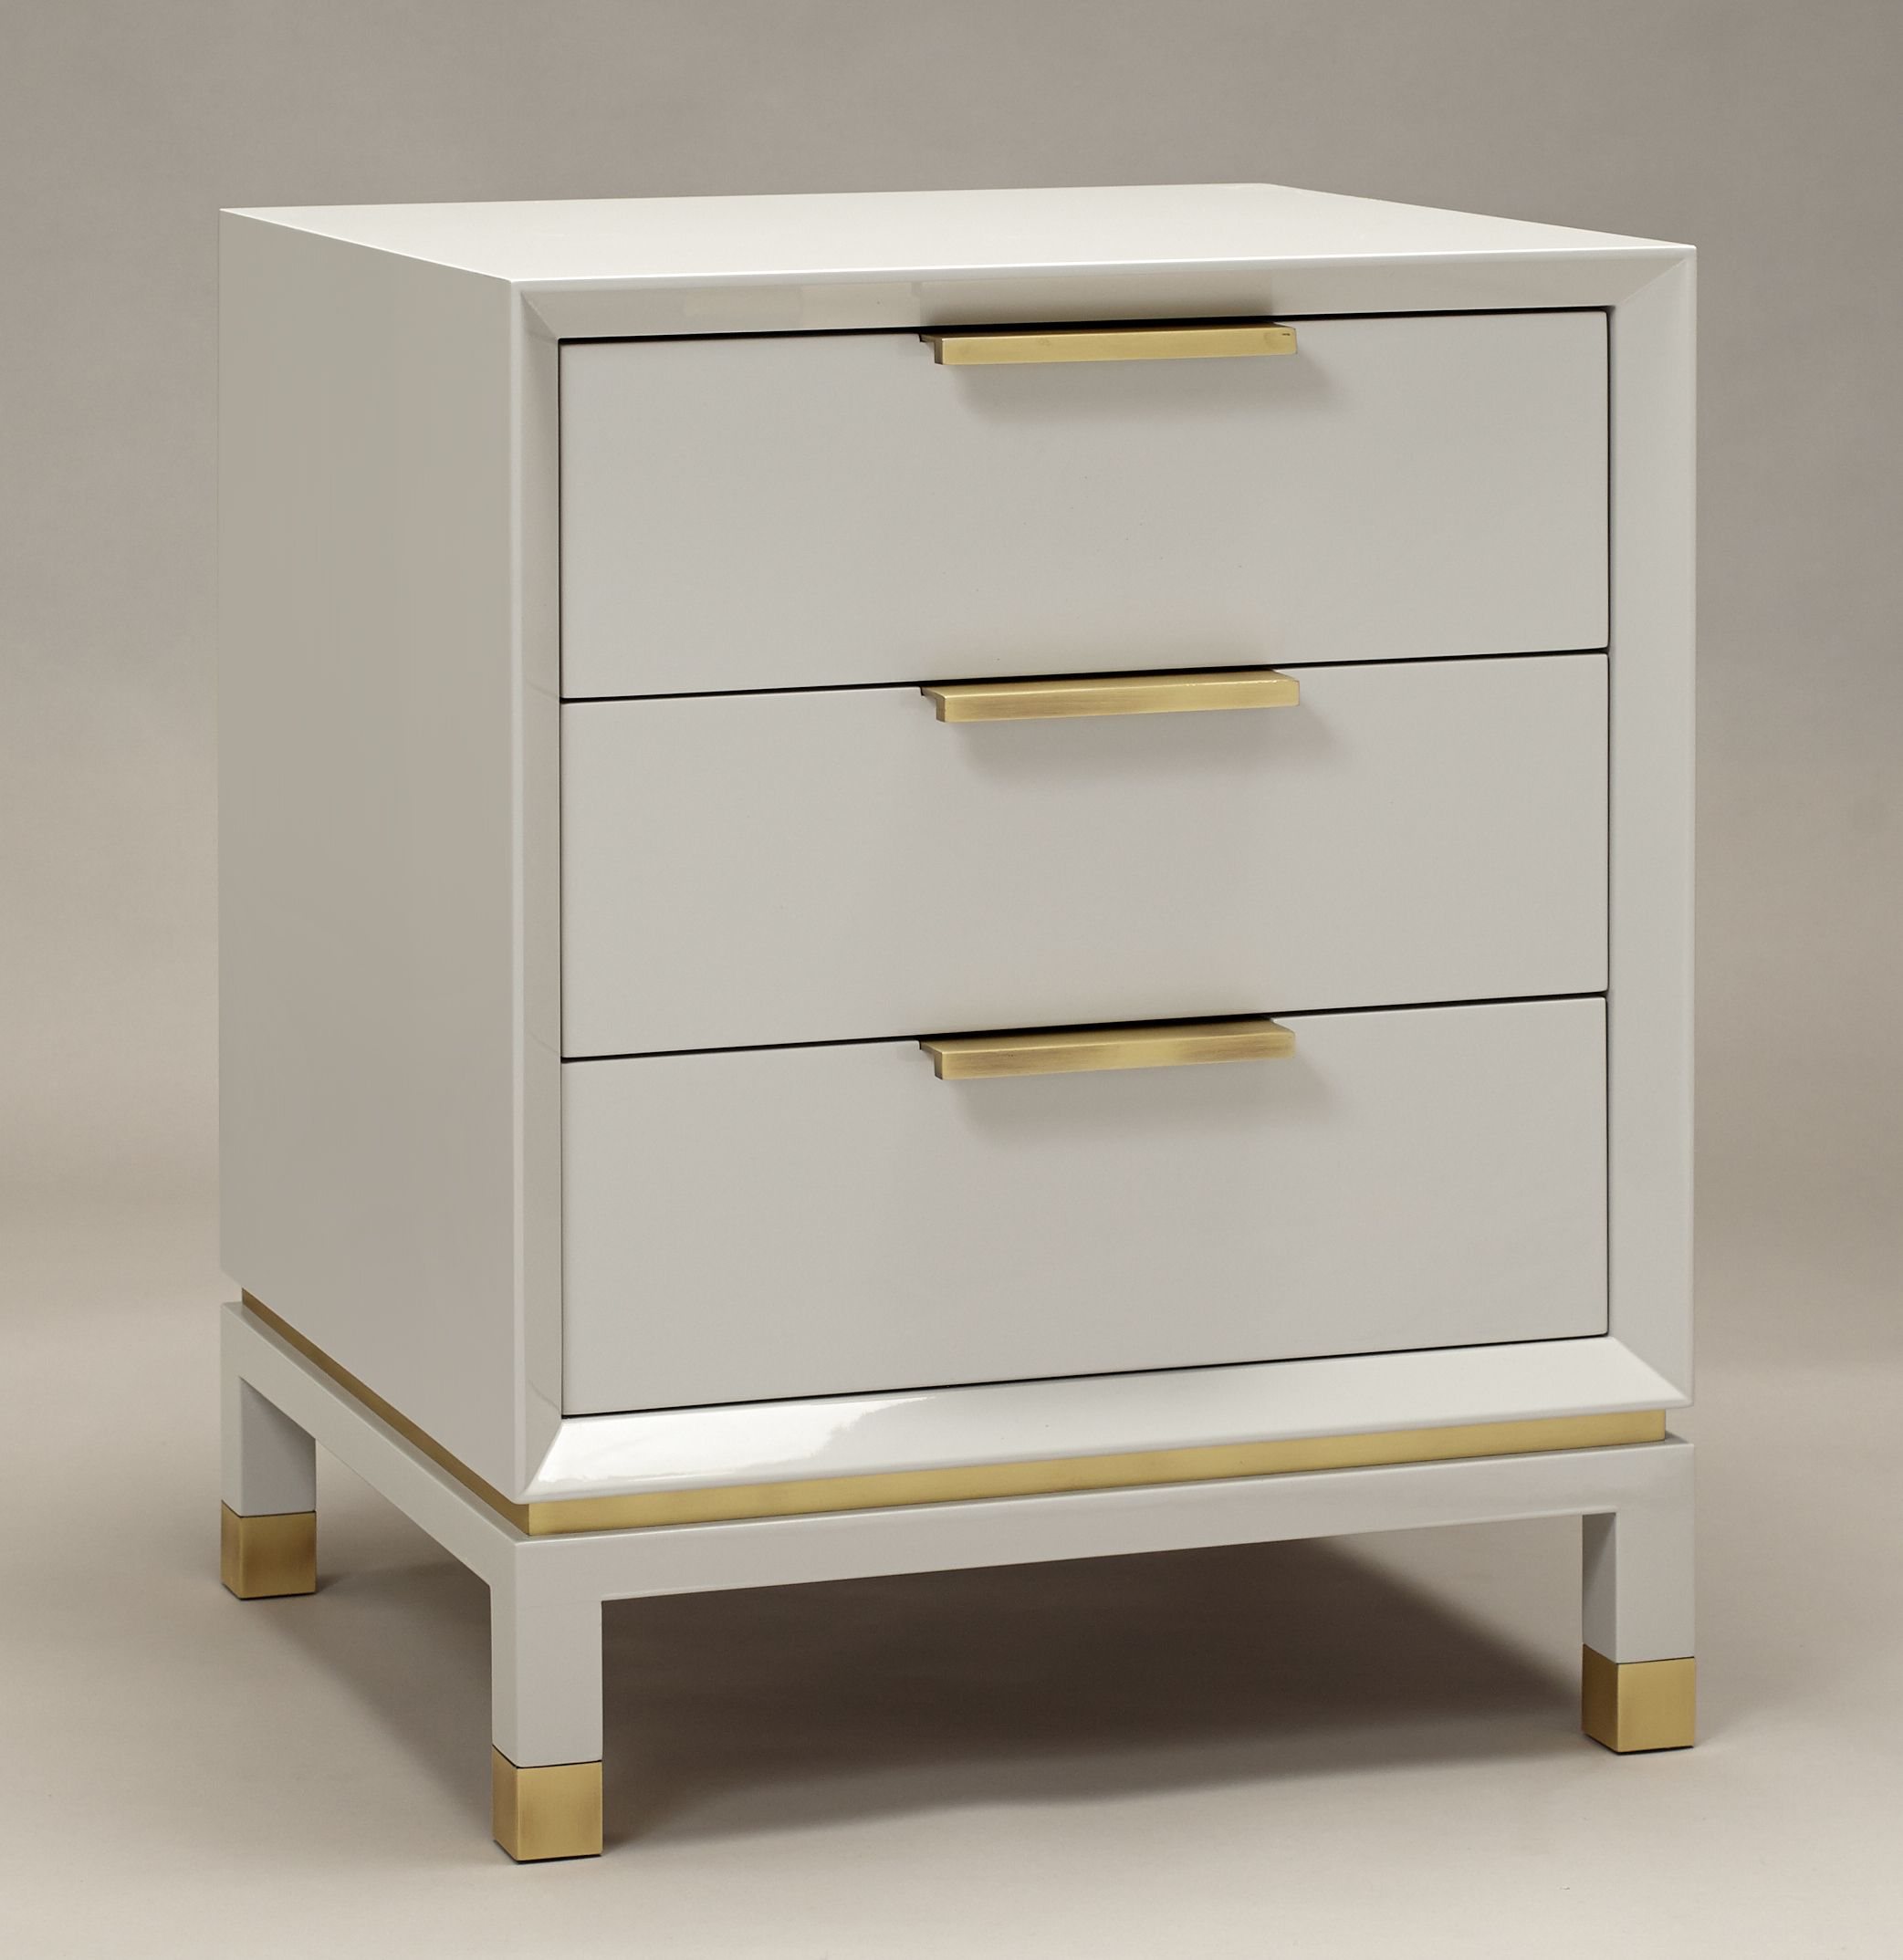 NEW IN Stock Baxter bedside table Available immediately High